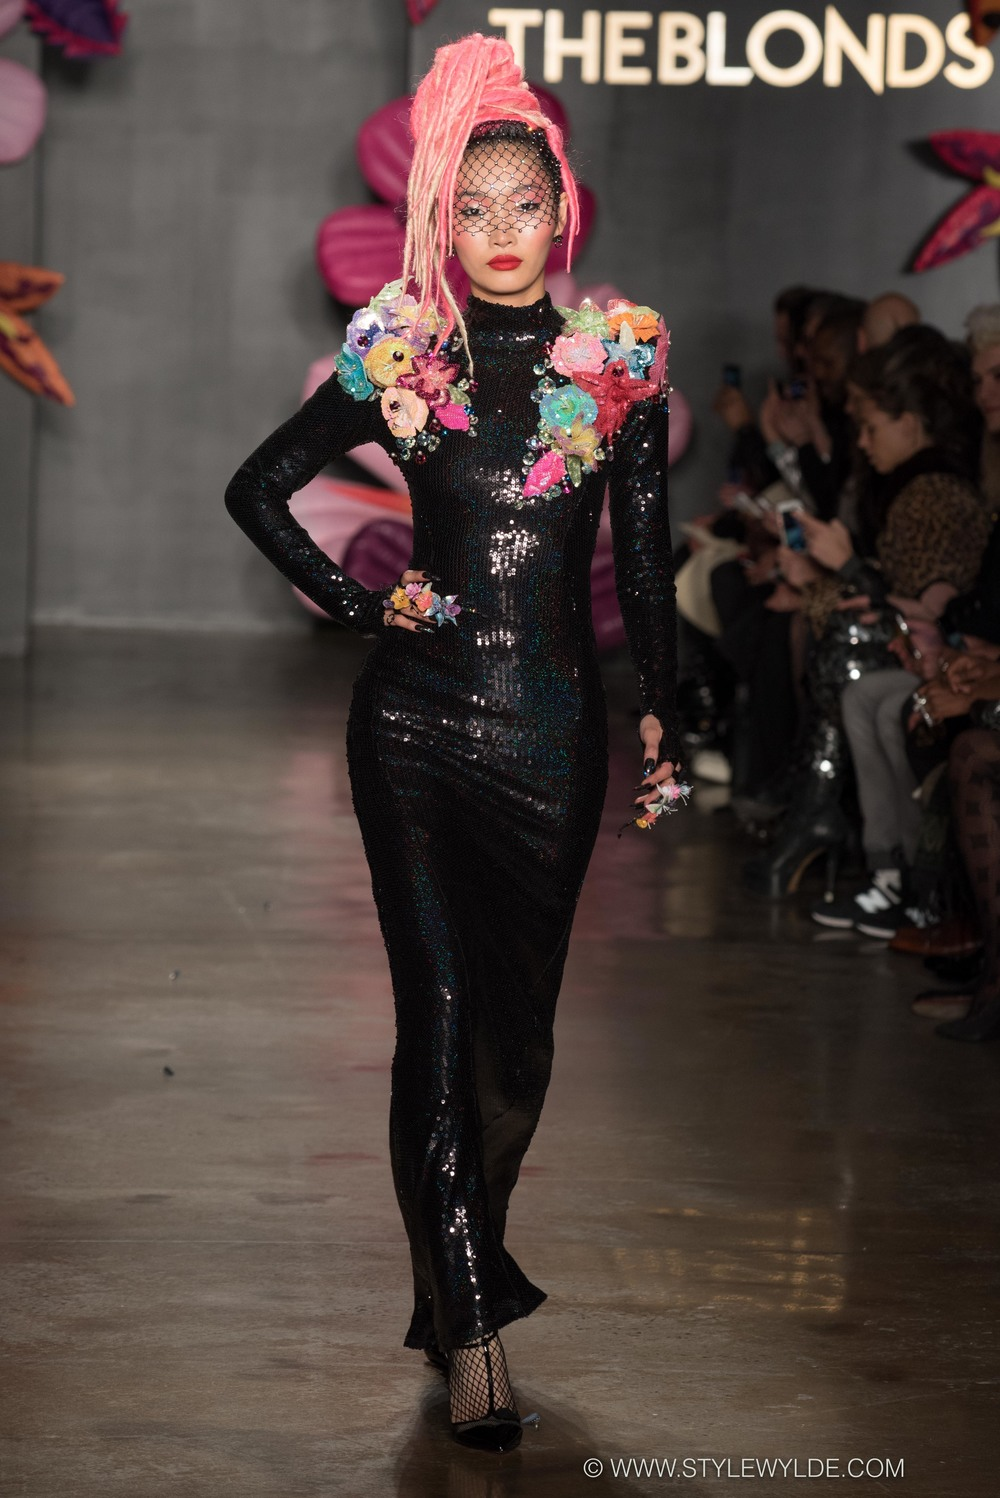 StyleWylde - The blonds- AW16-29.jpg